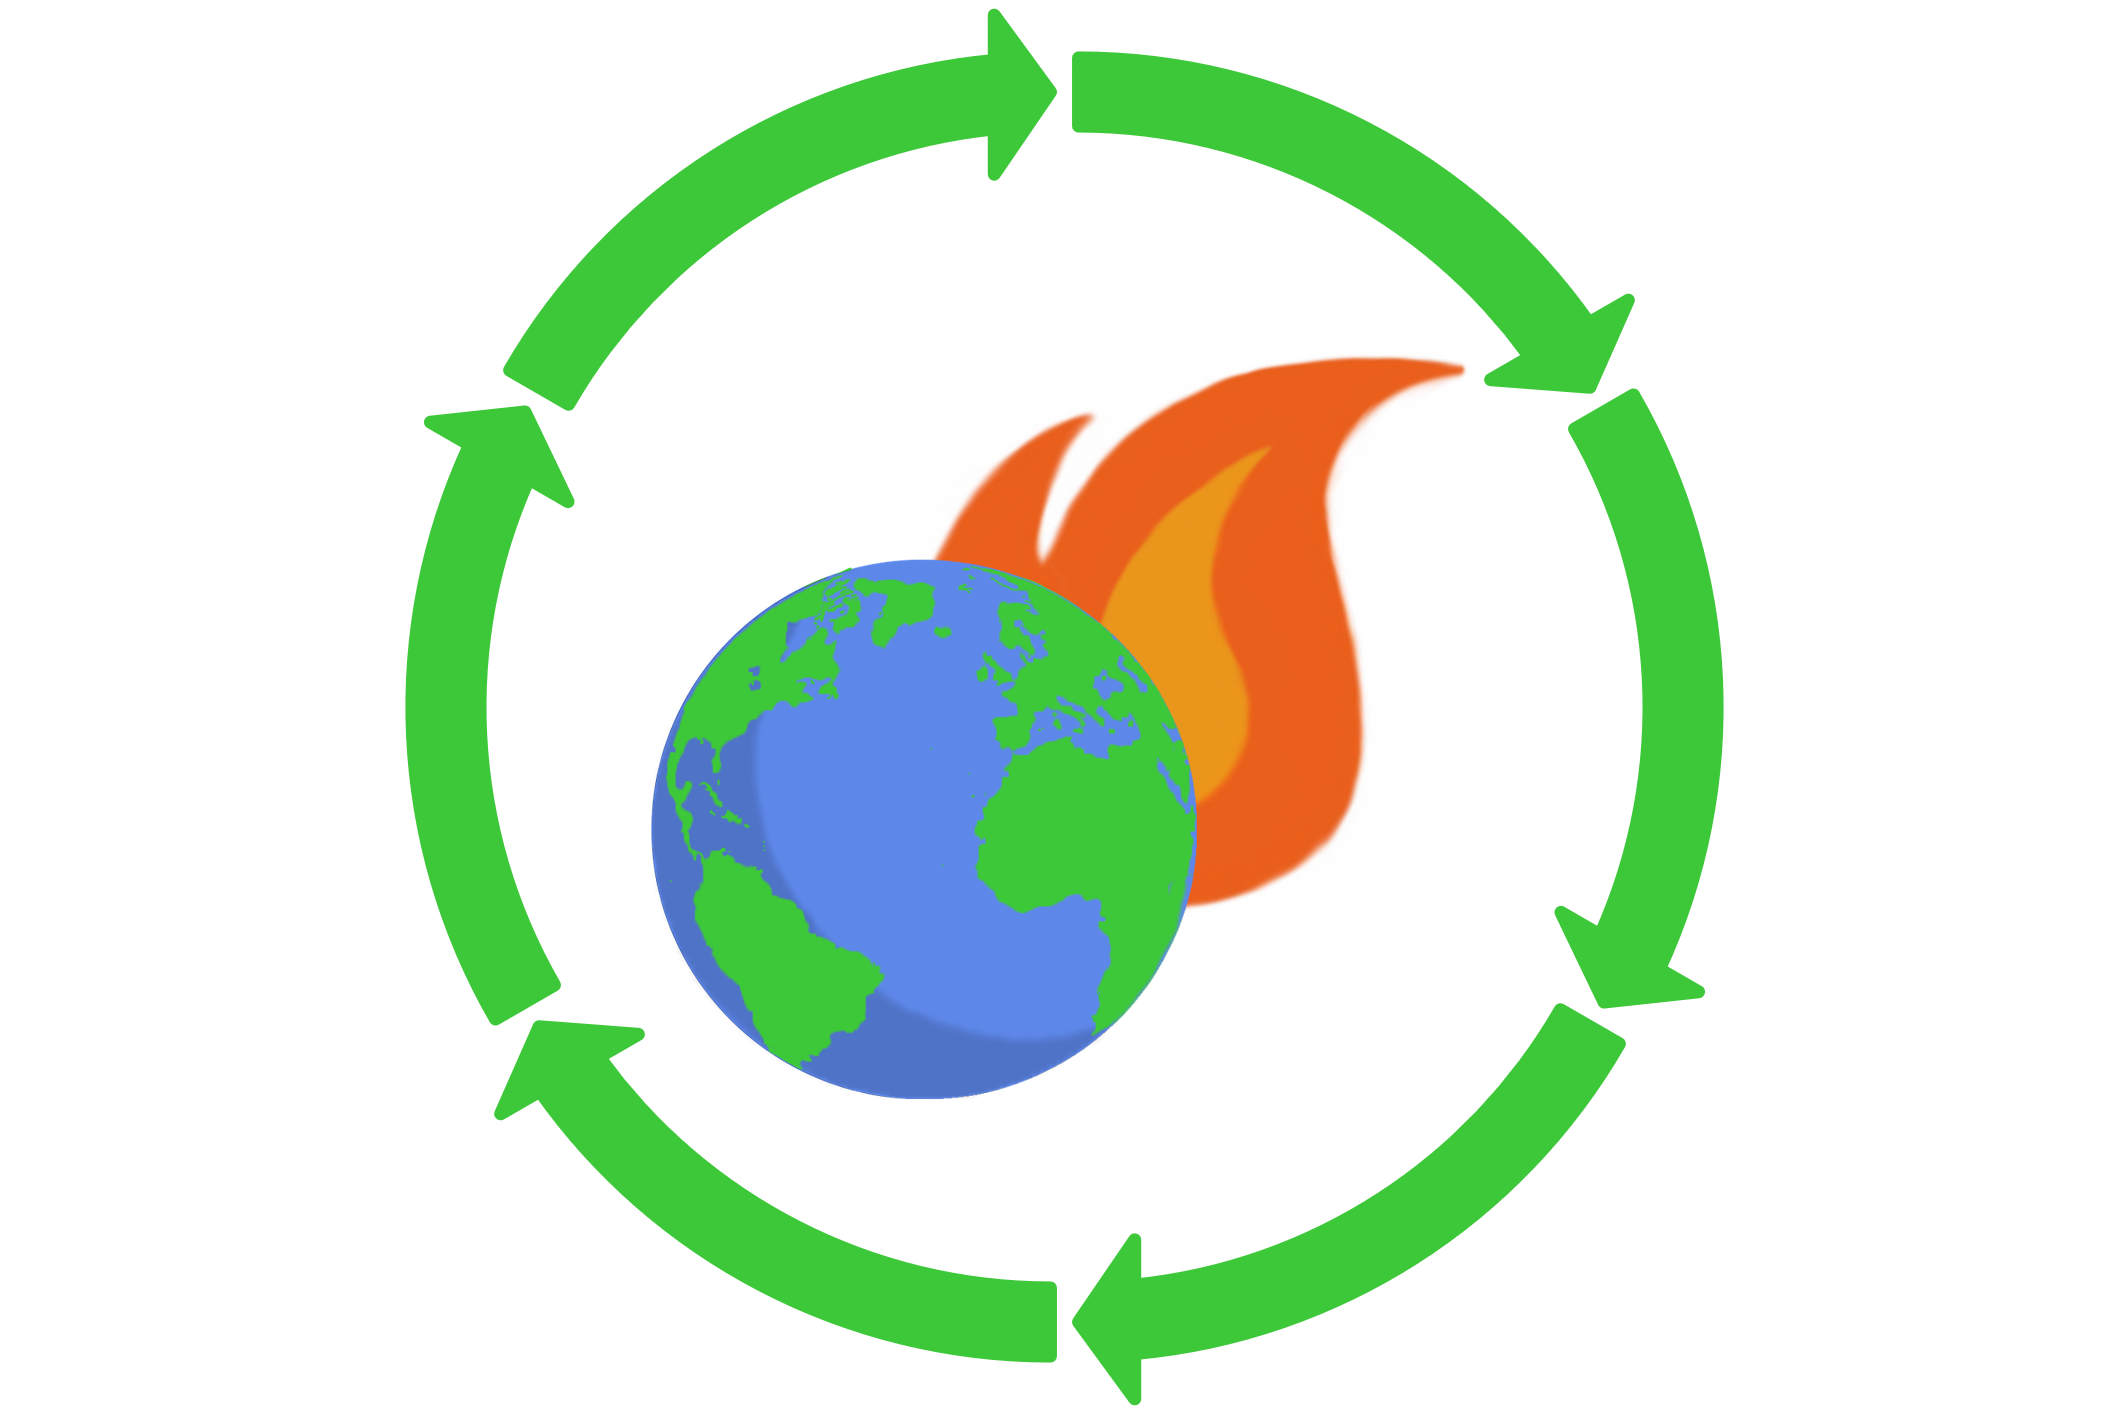 File:Climate change adaptation icon.png.